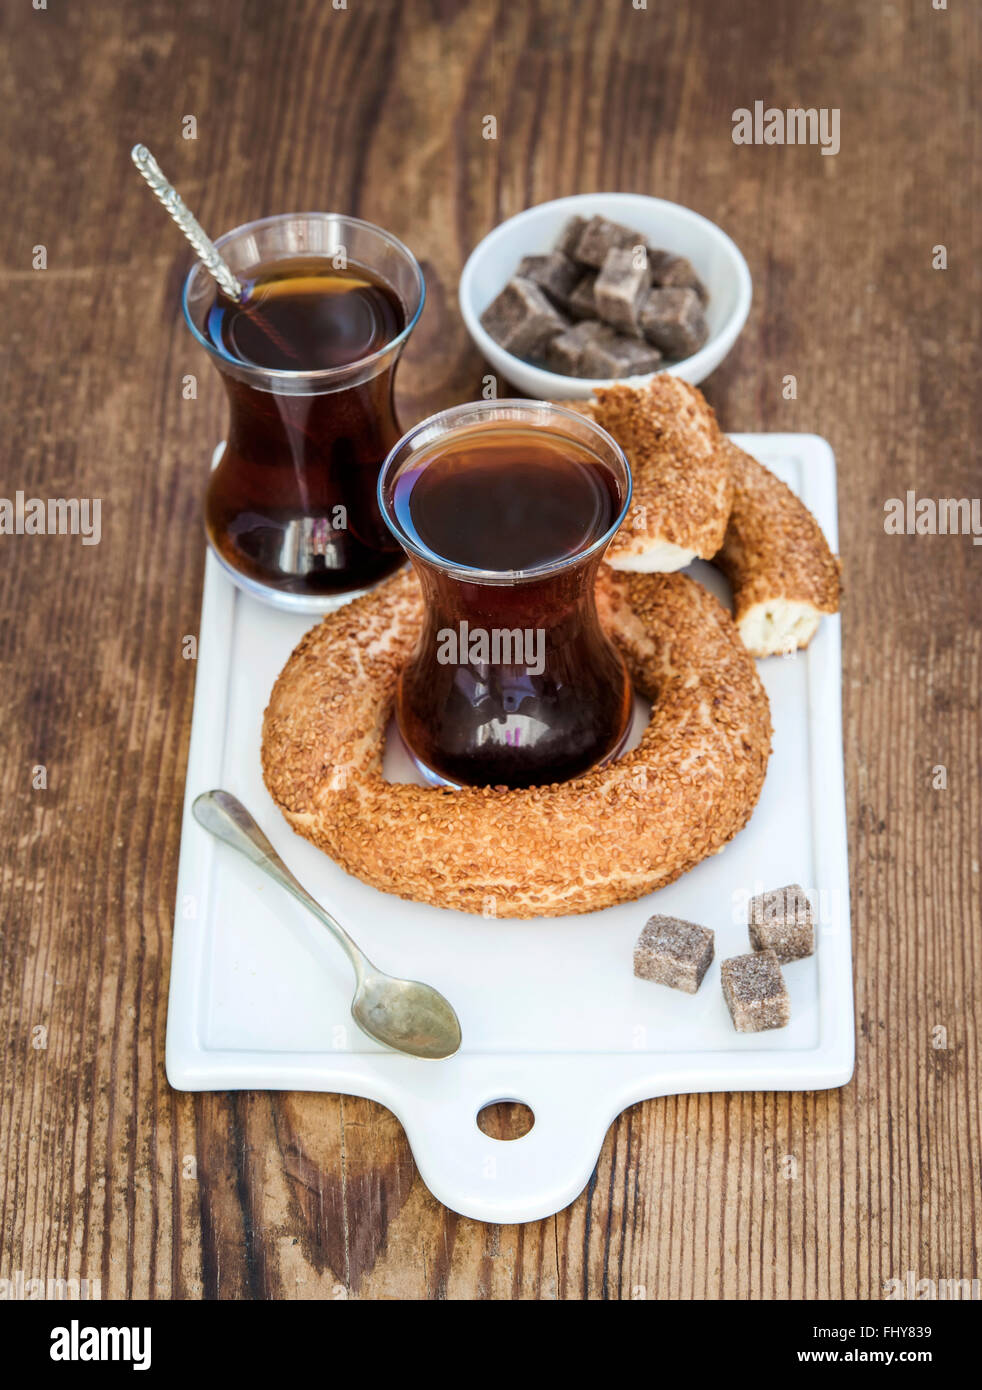 Turkish traditional black tea in a glass and turkish bagel simit on white ceramic serving board over wooden background - Stock Image